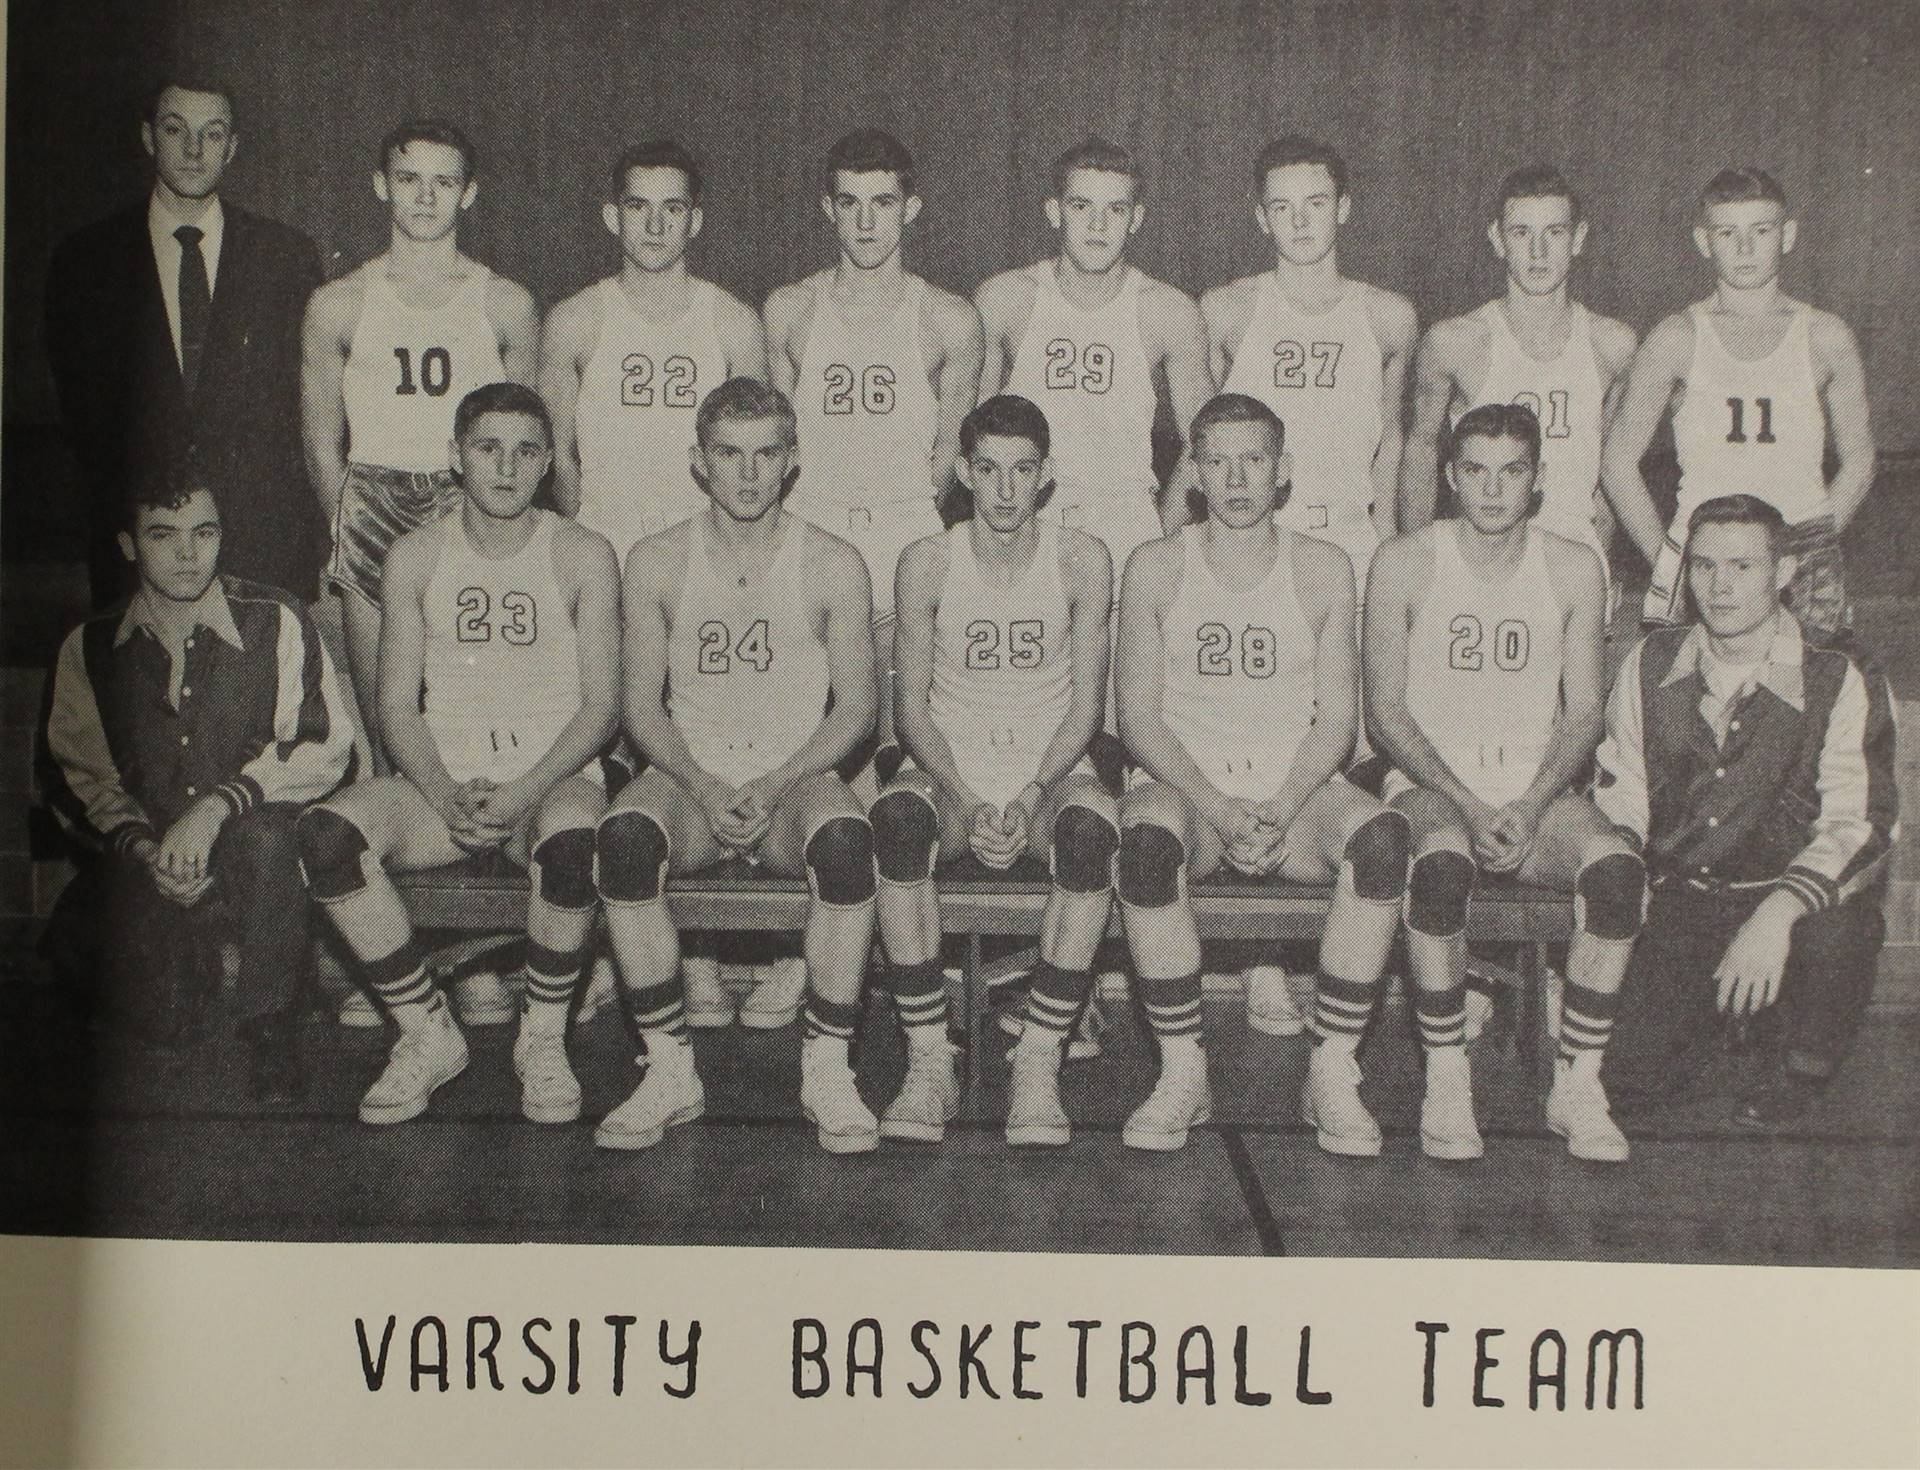 1953 varsity basketball team